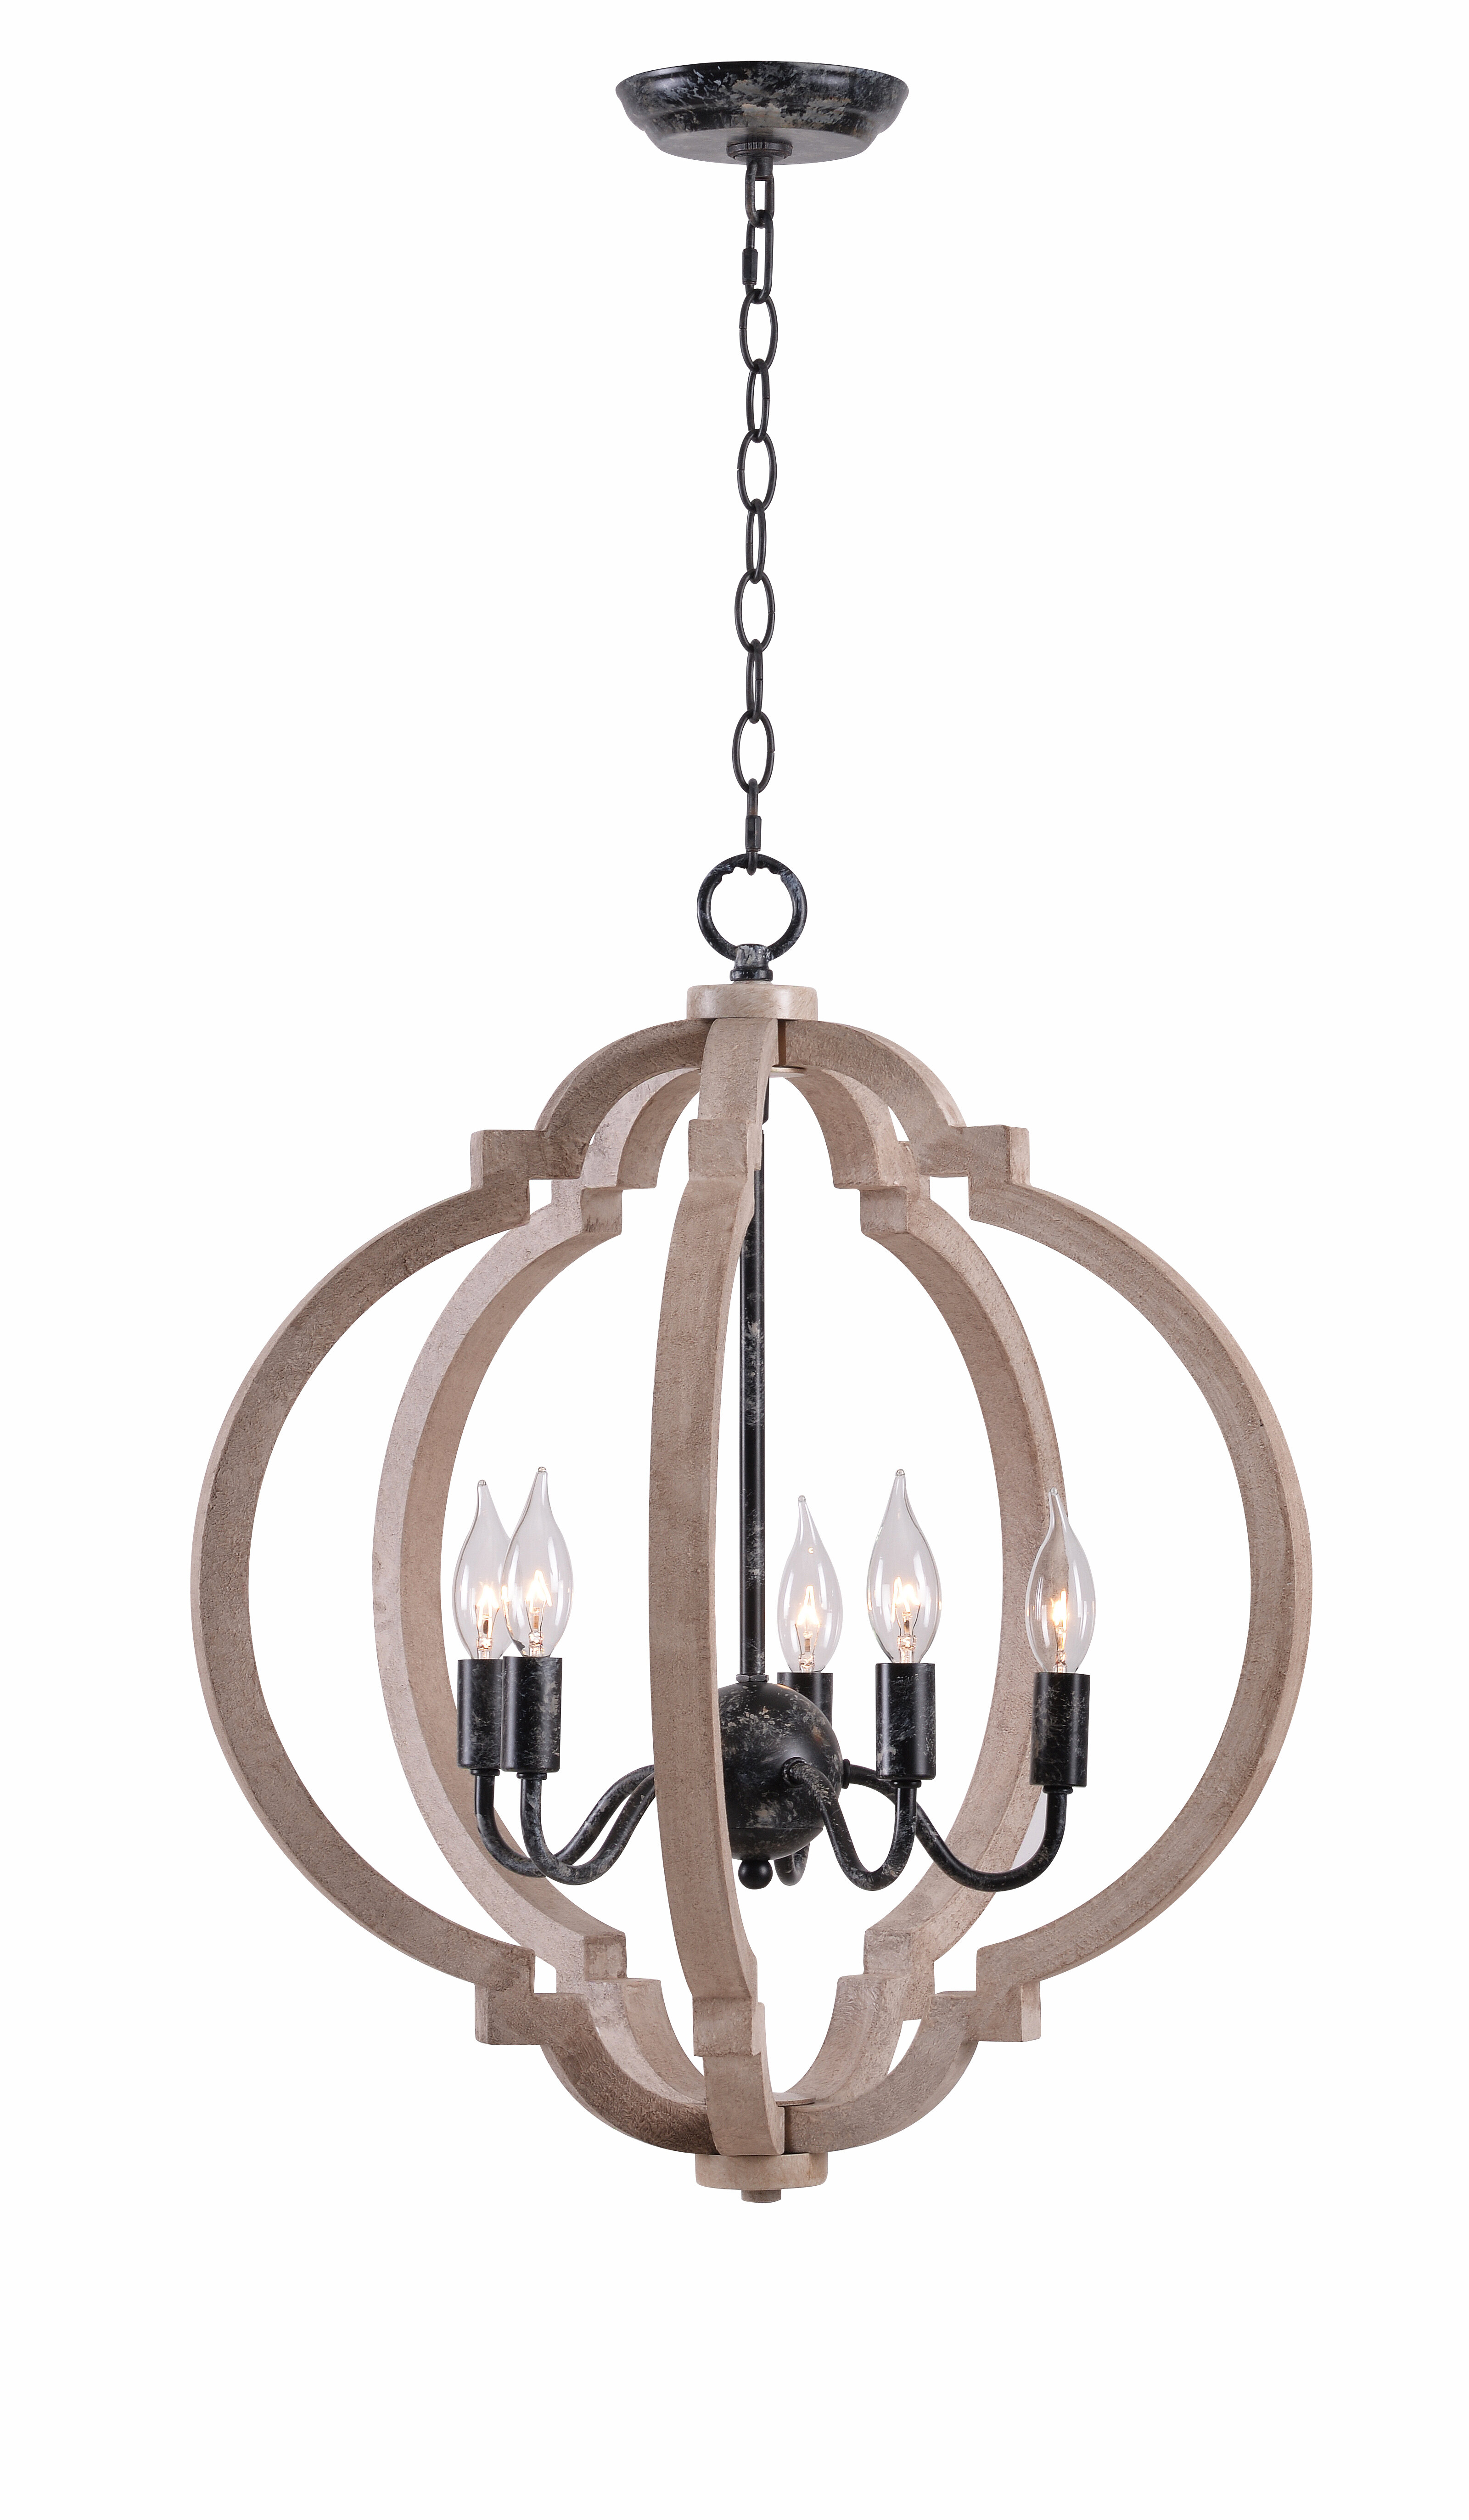 Gracie oaks briony 5 light lantern chandelier reviews wayfair